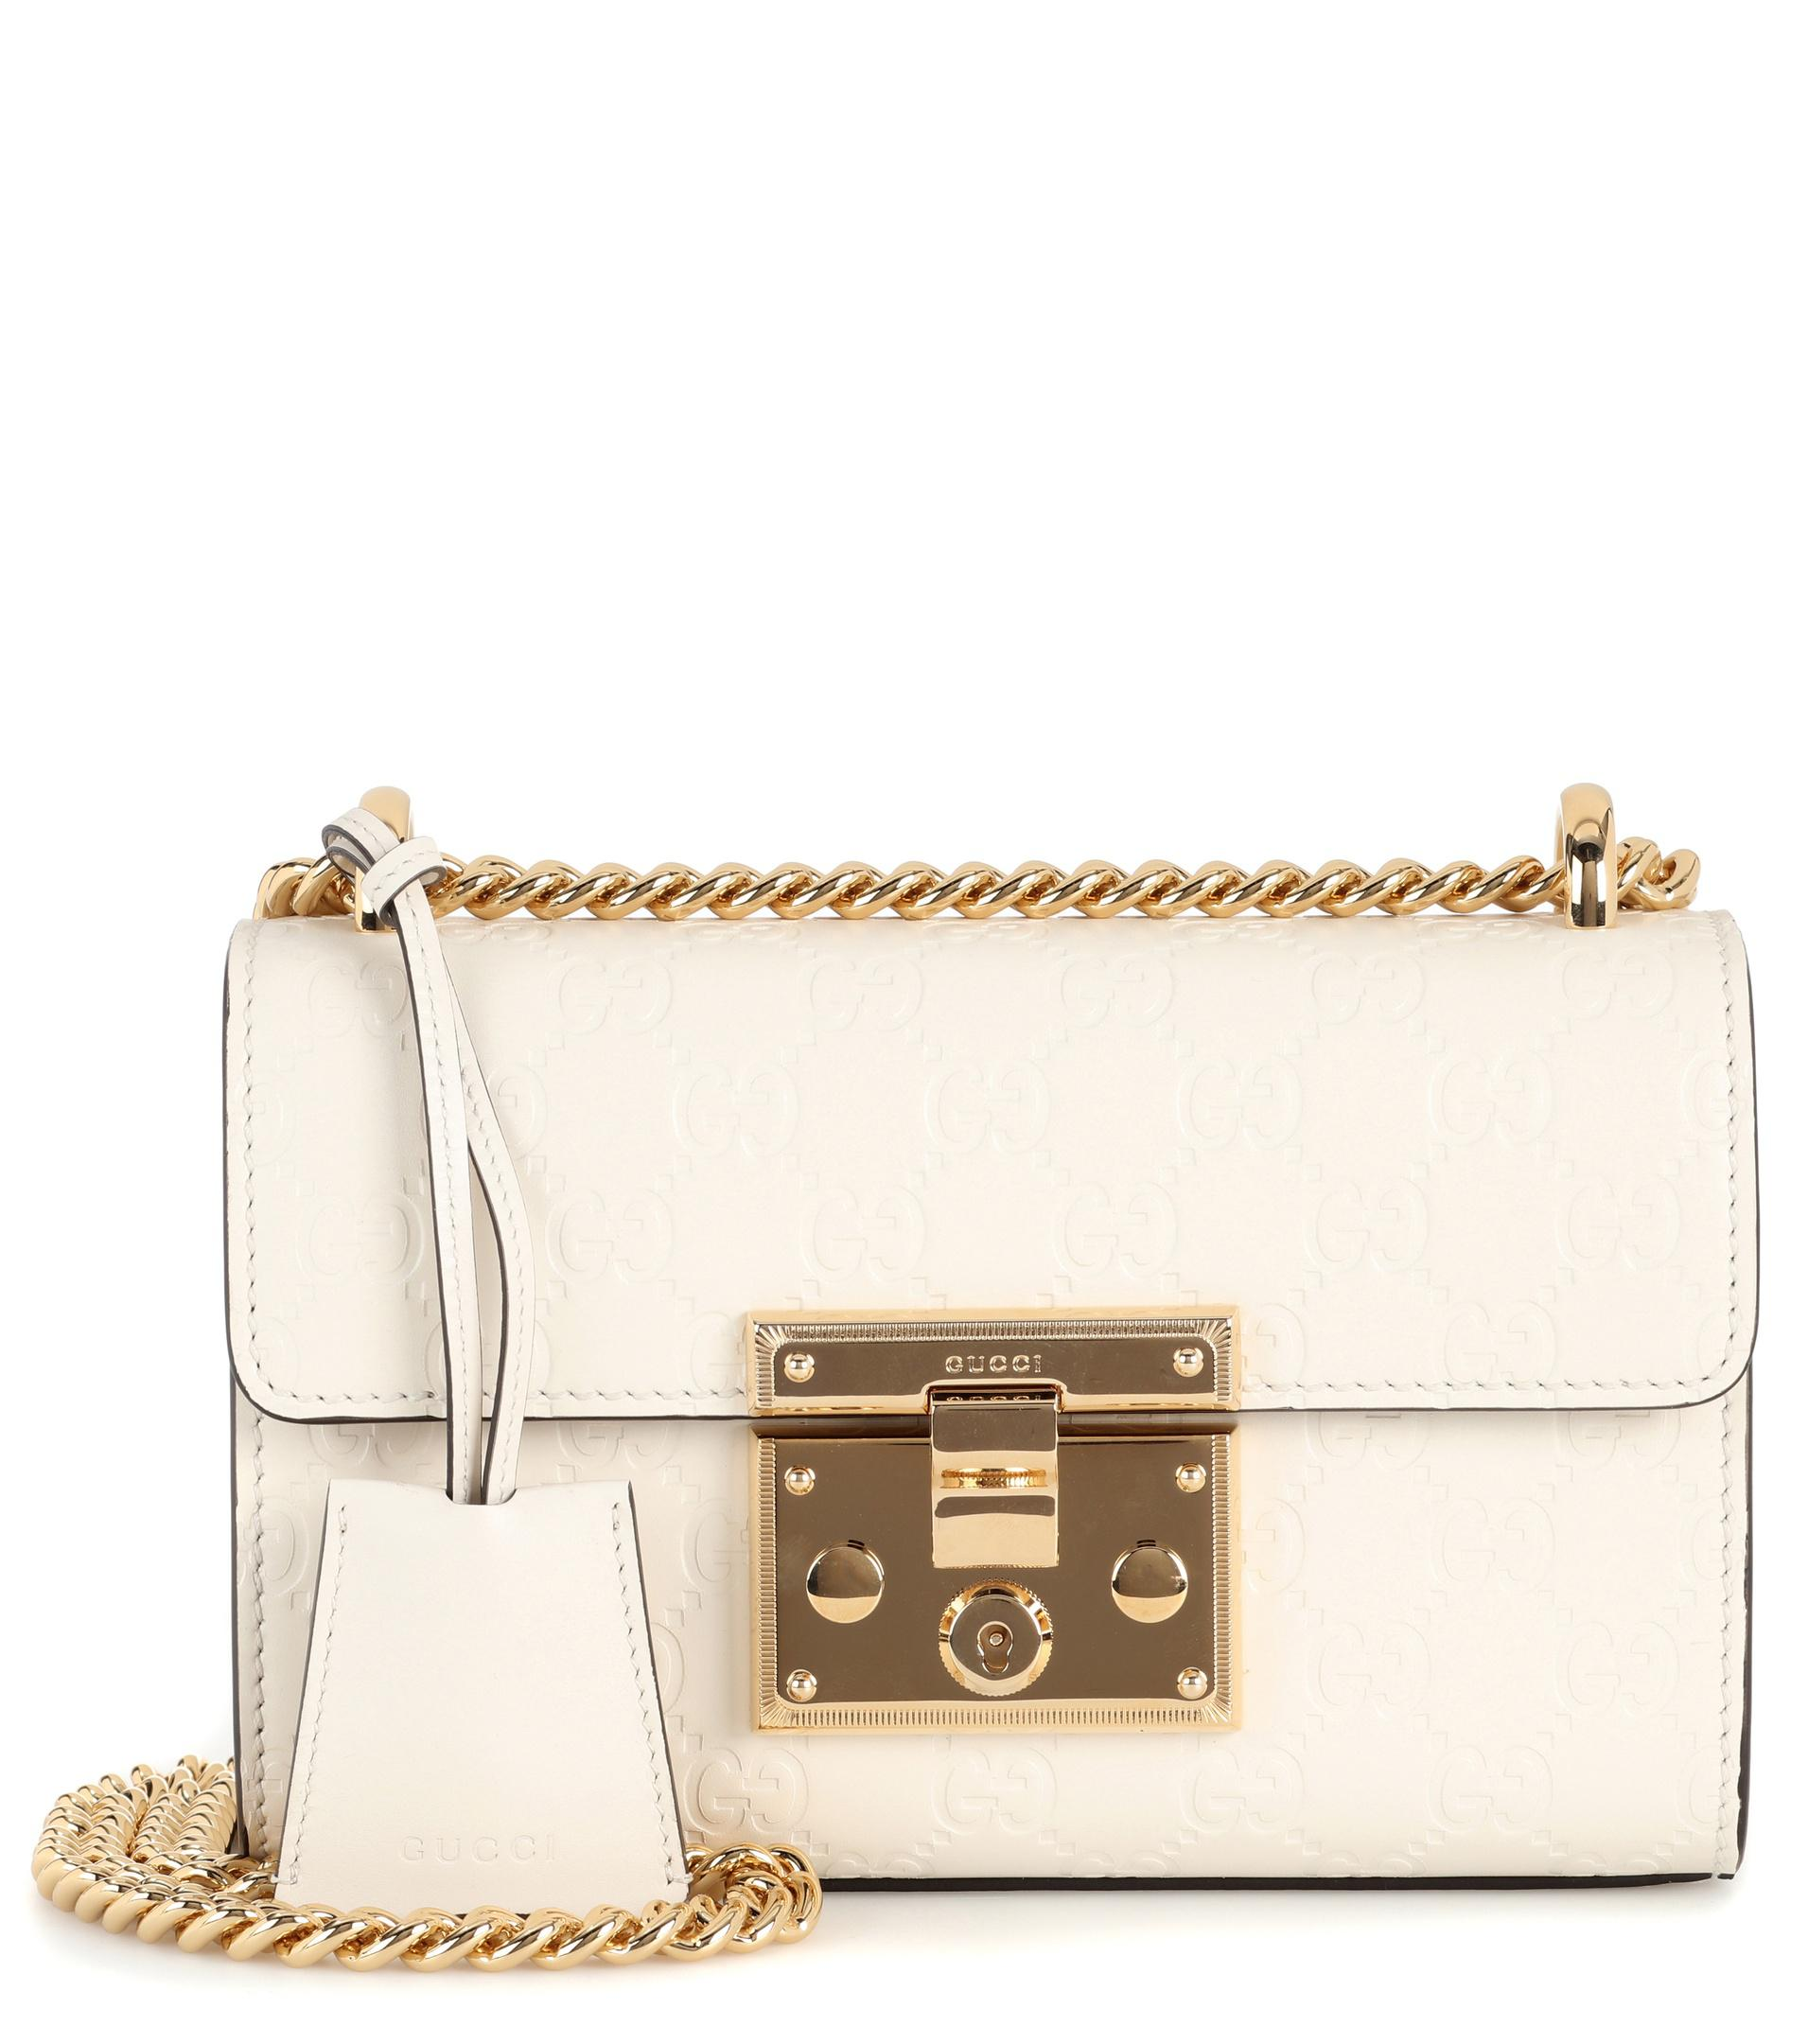 6896e800d1b9 Gucci Padlock Small Leather Shoulder Bag in White - Lyst